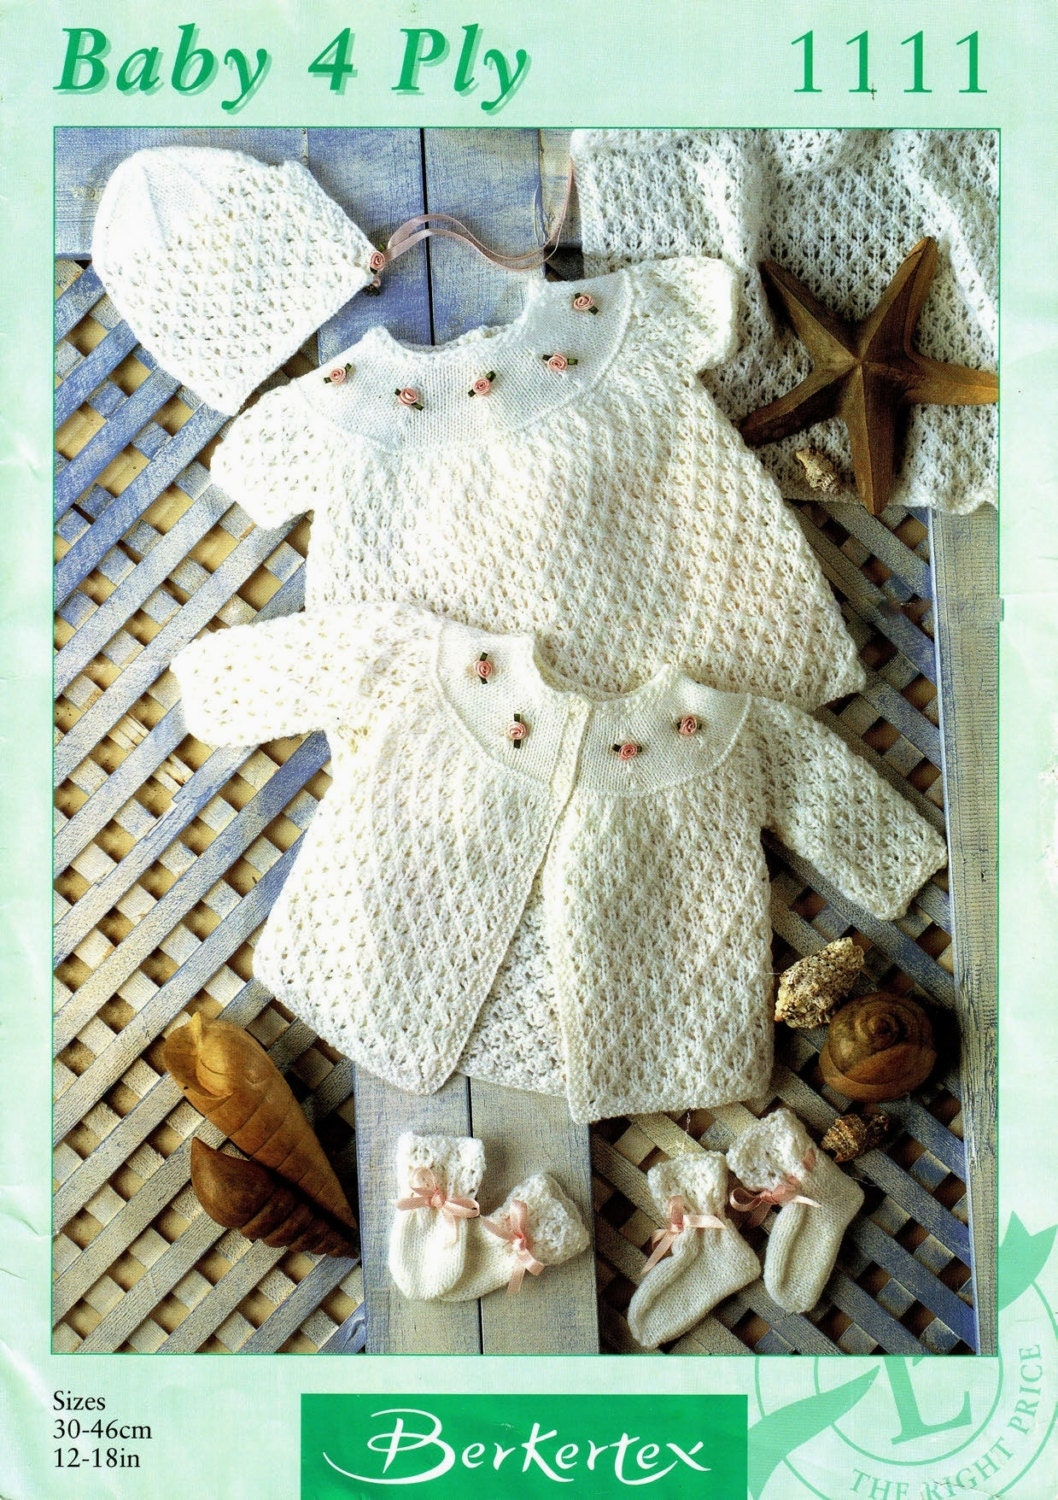 4 PLY BABY KNITTING PATTERN FREE   KNITTING PATTERN